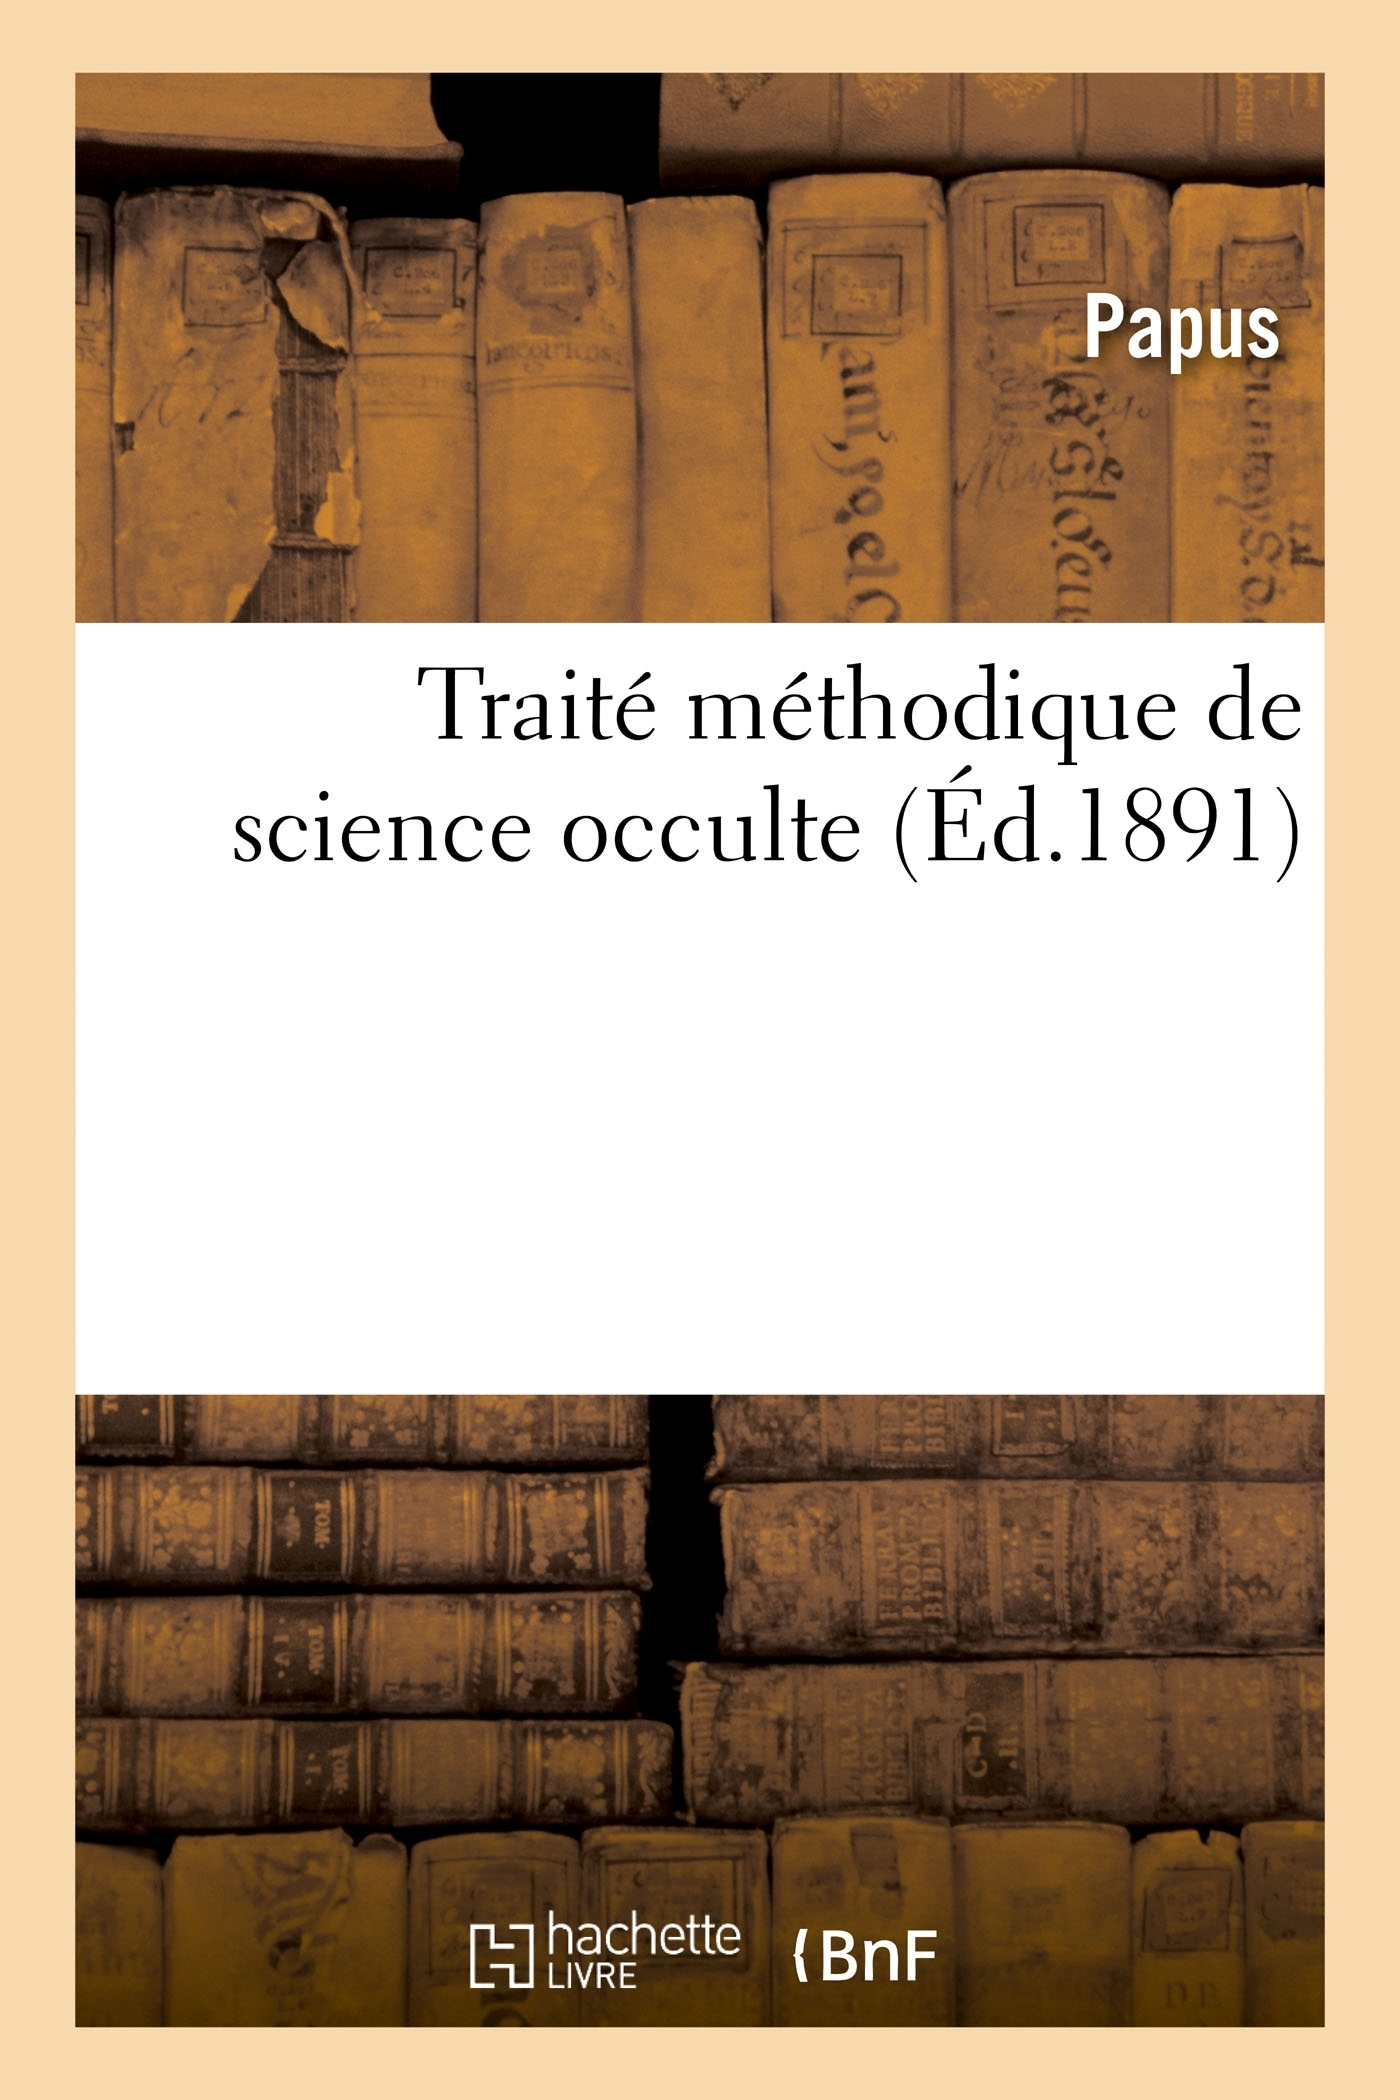 TRAITE METHODIQUE DE SCIENCE OCCULTE